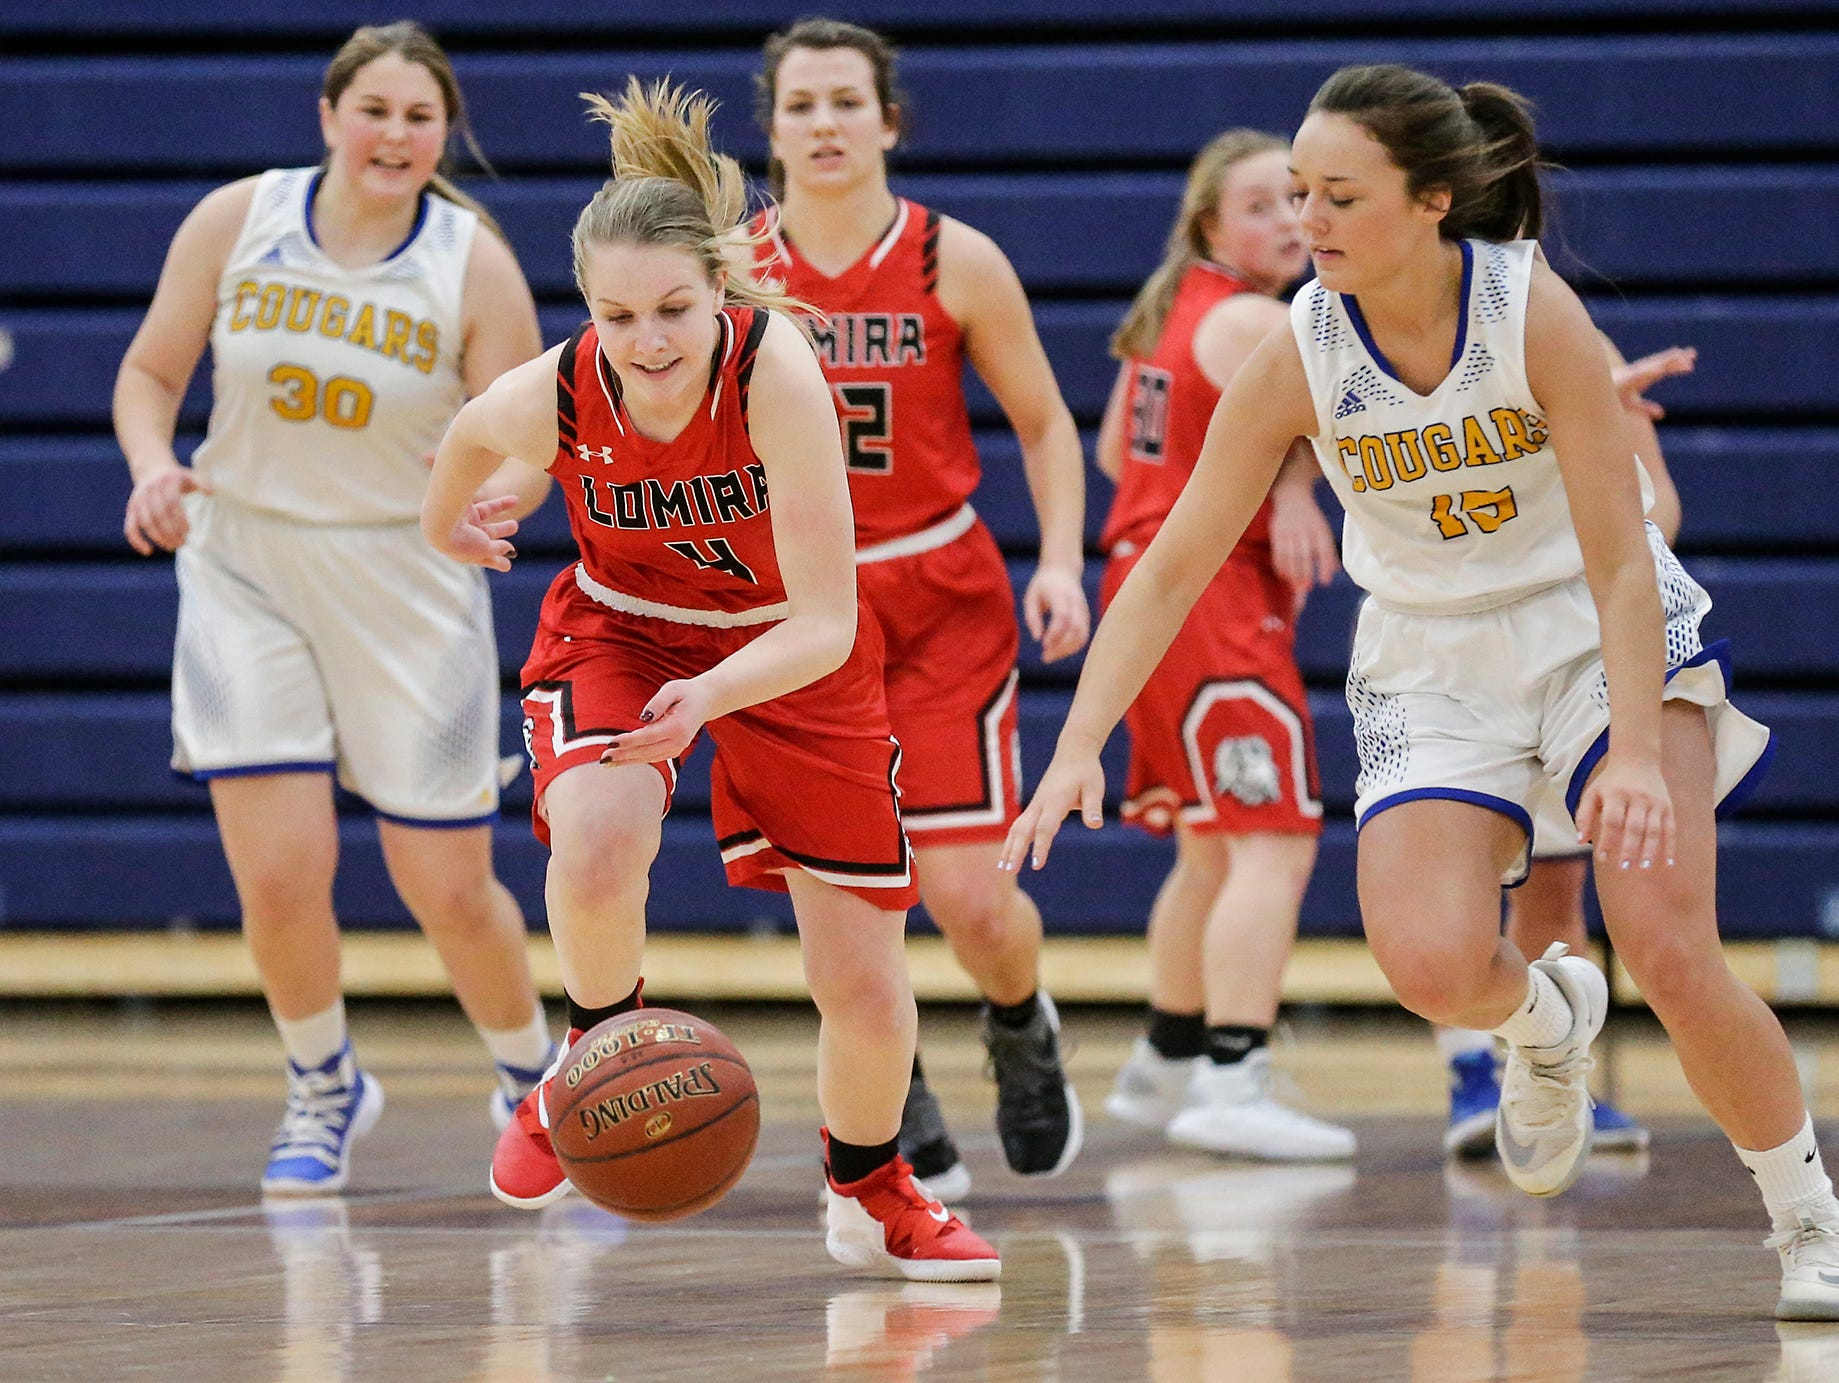 Lomira High School girls basketball's Elizabeth Wulff and Campbellsport High School's Grace Nerat race after a loose ball during their game Friday, December 28, 2018 in Campbellsport. Doug Raflik/USA TODAY NETWORK-Wisconsin